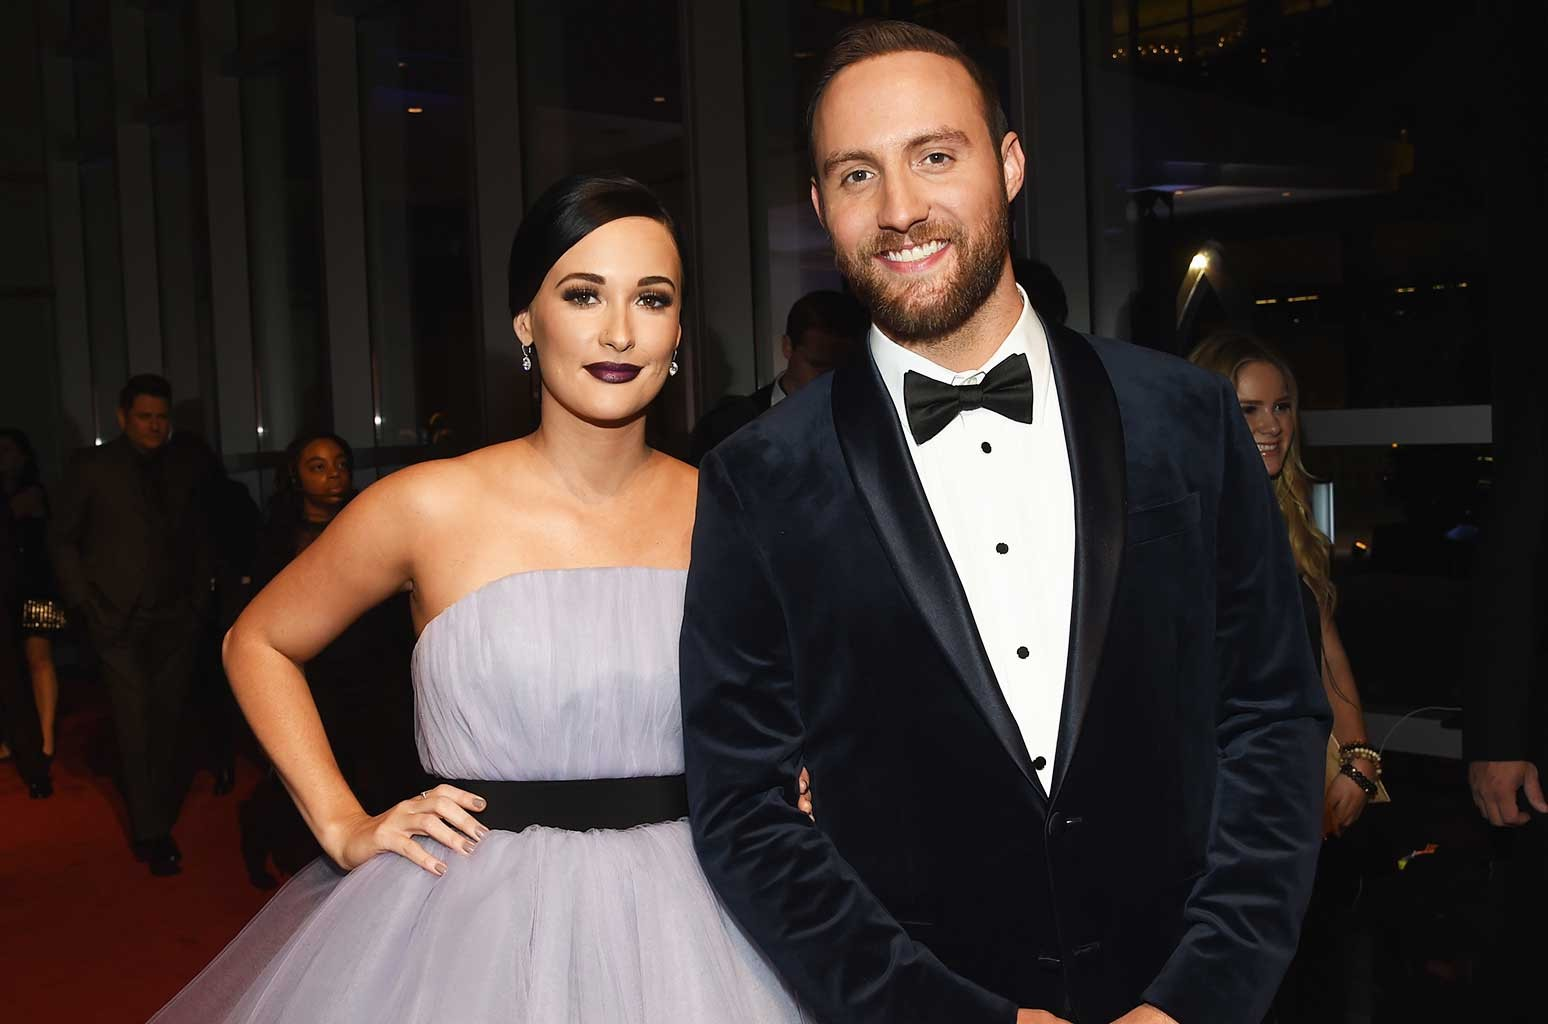 Kasey Musgraves and Ruston Kelly attend the 50th annual CMA Awards at the Bridgestone Arena on Nov. 2, 2016 in Nashville, Tenn.